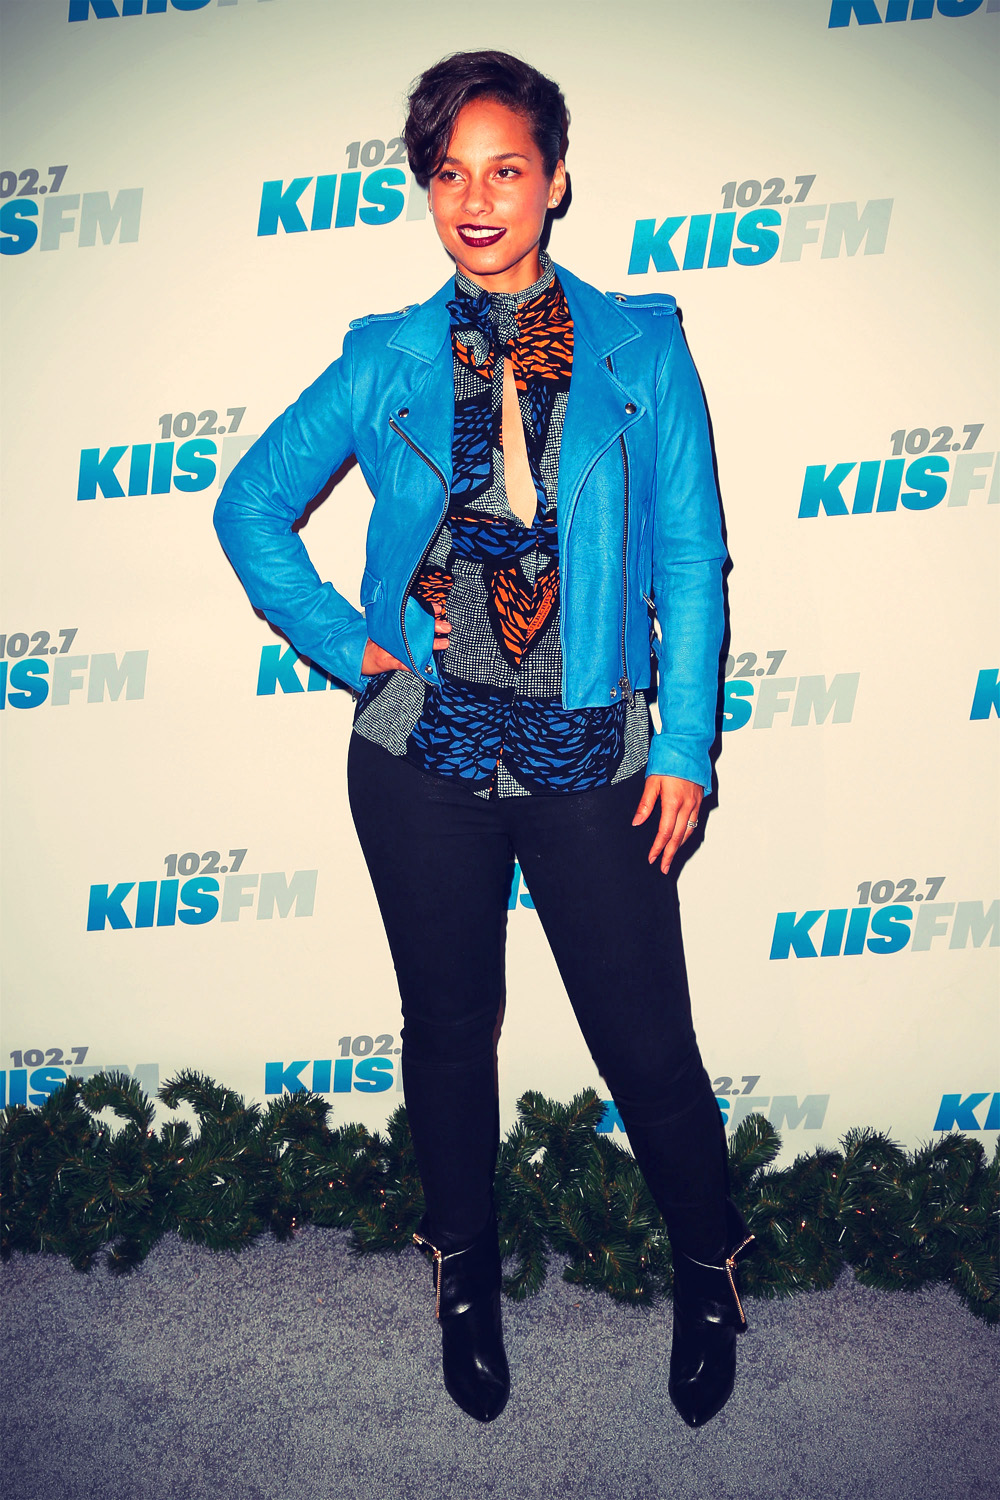 Alicia Keys during KIIS FM's 2012 Jingle Ball